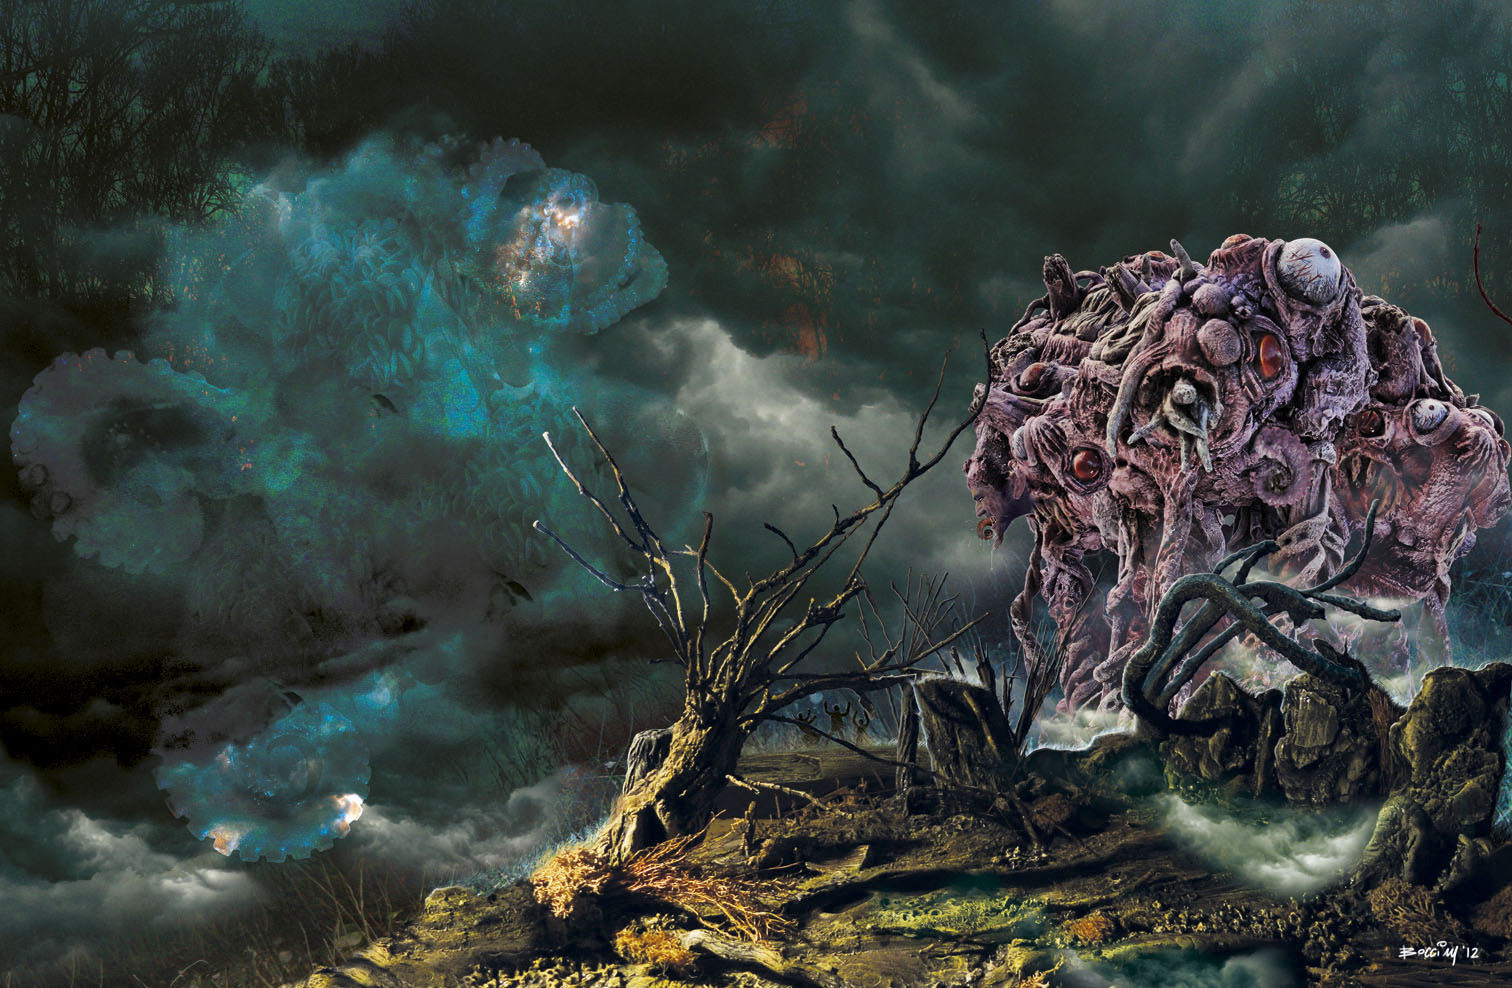 """The twin of Wilbur inspired by H.P. Lovecraft's masterpiece """"The Dunwich Horror"""""""